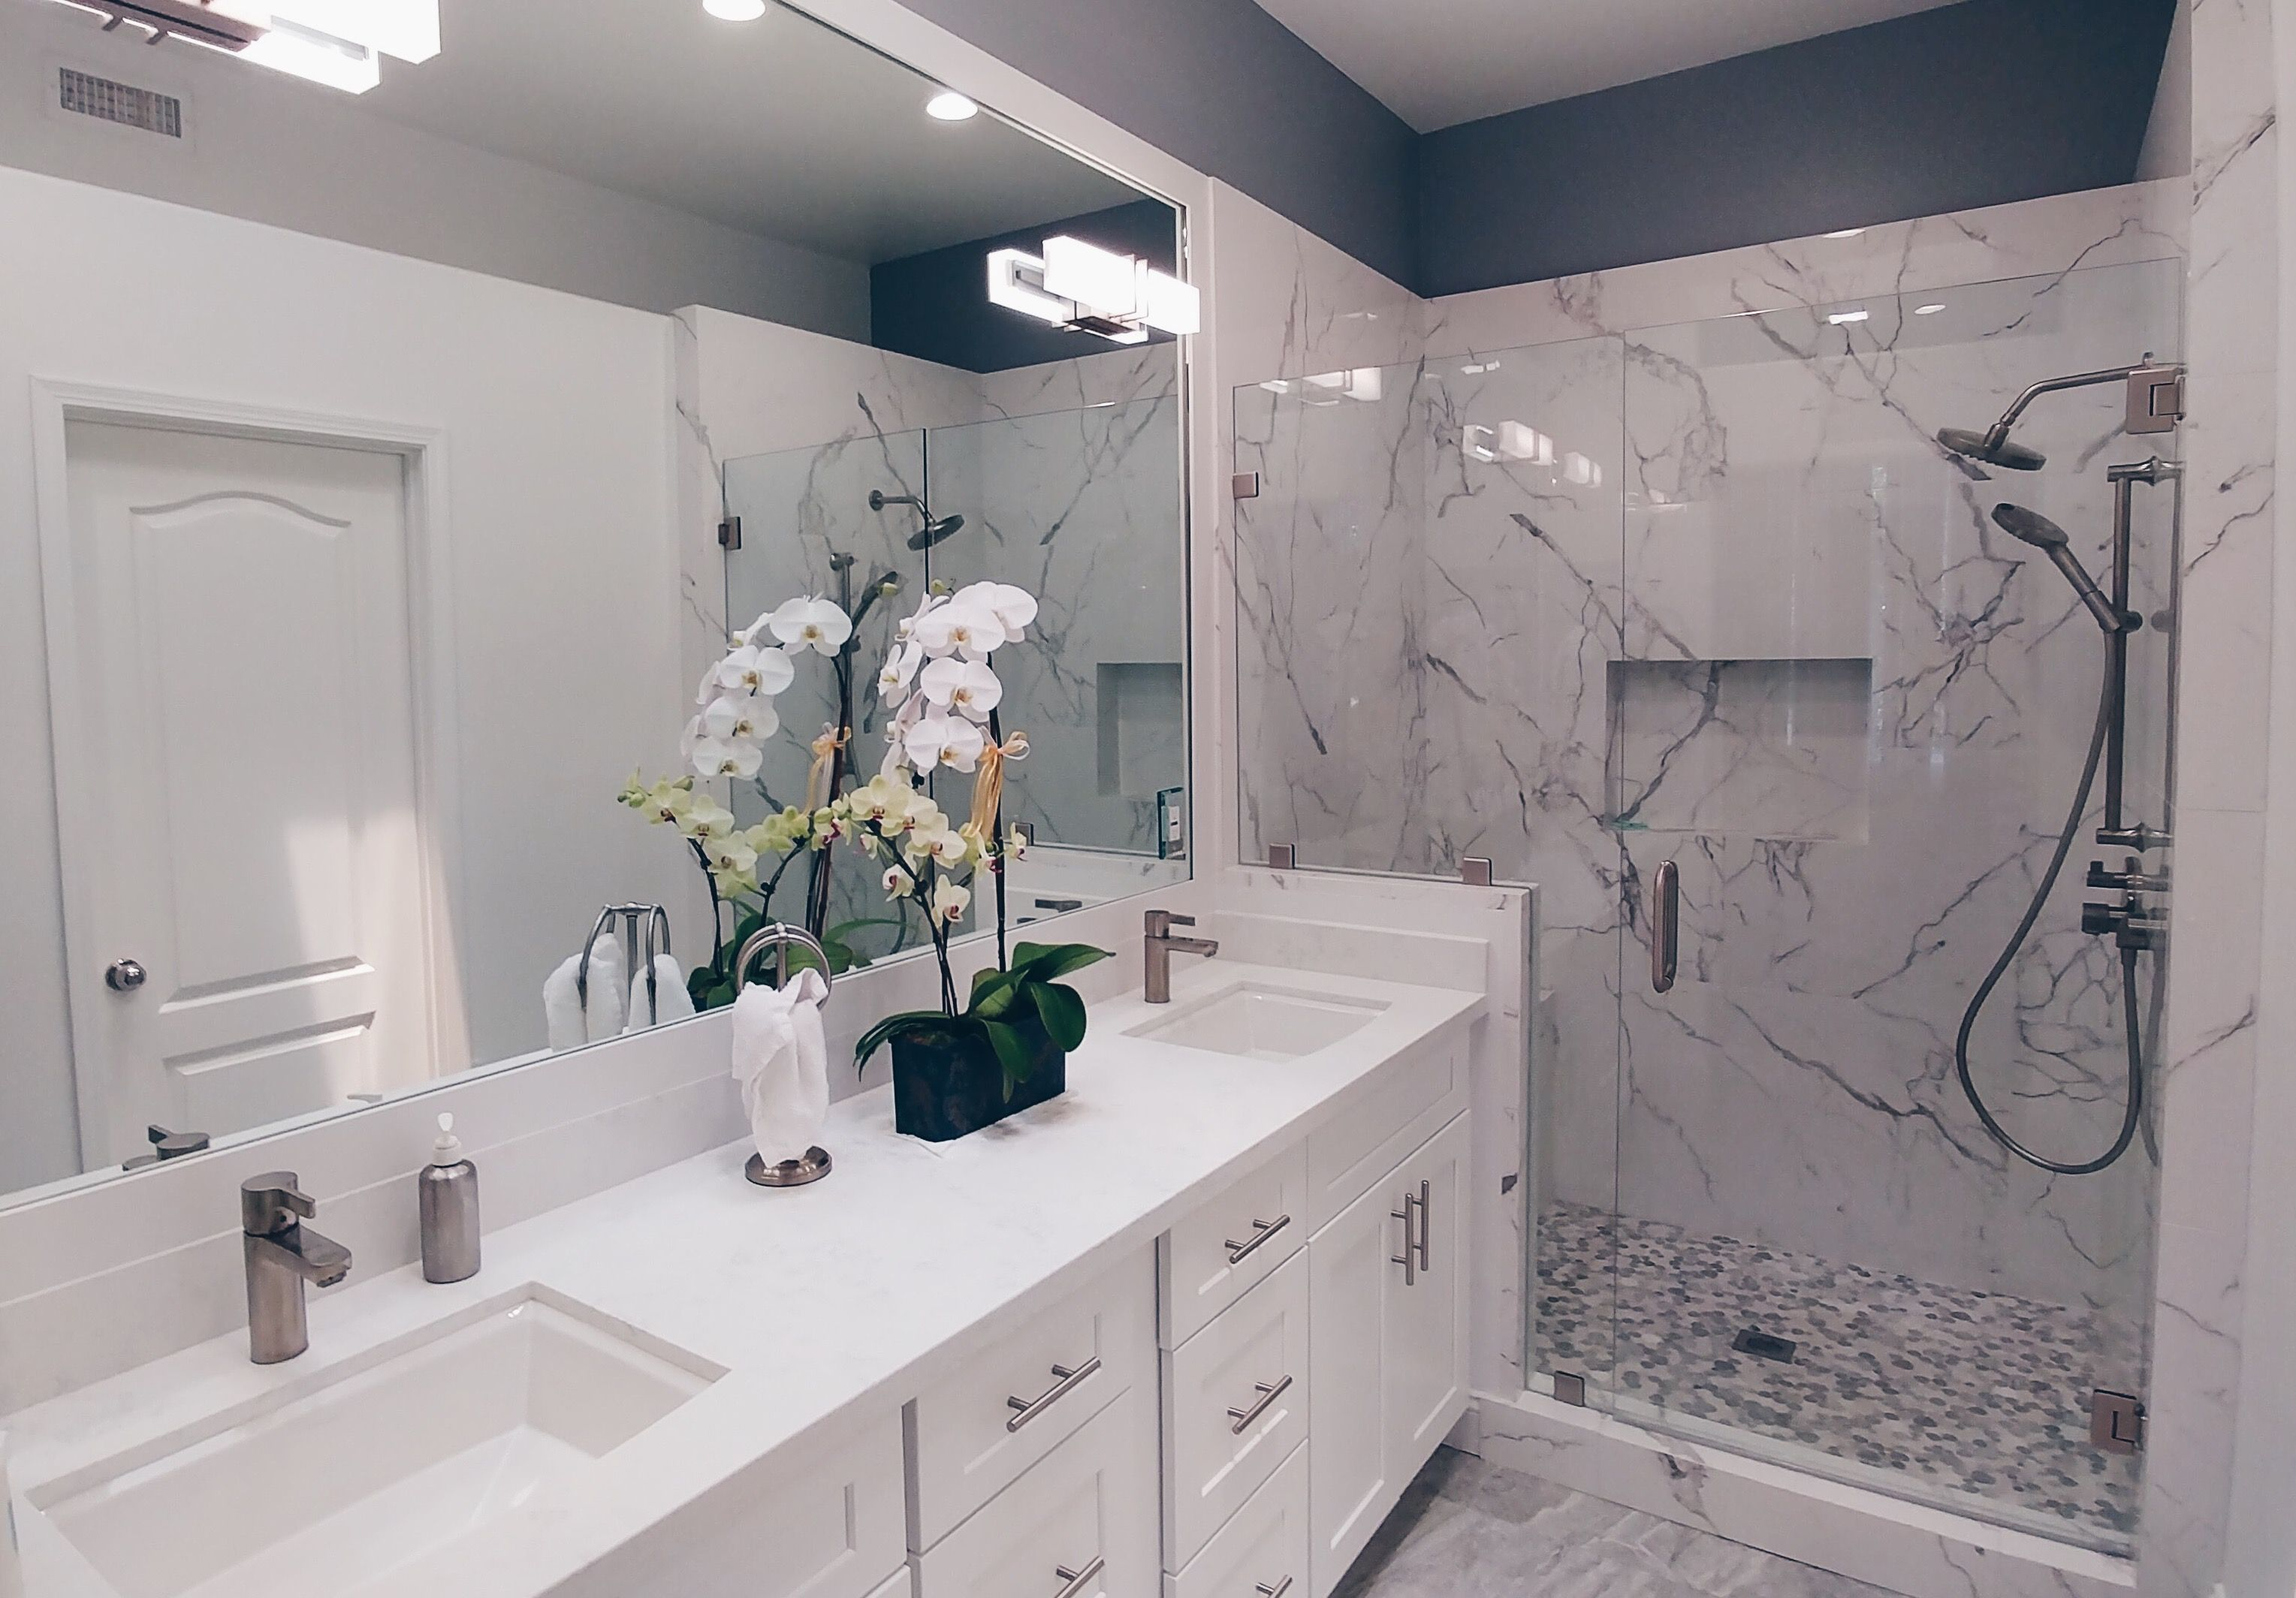 Pin by Patty Anaya on Bathroom | Bathroom images, Home ...